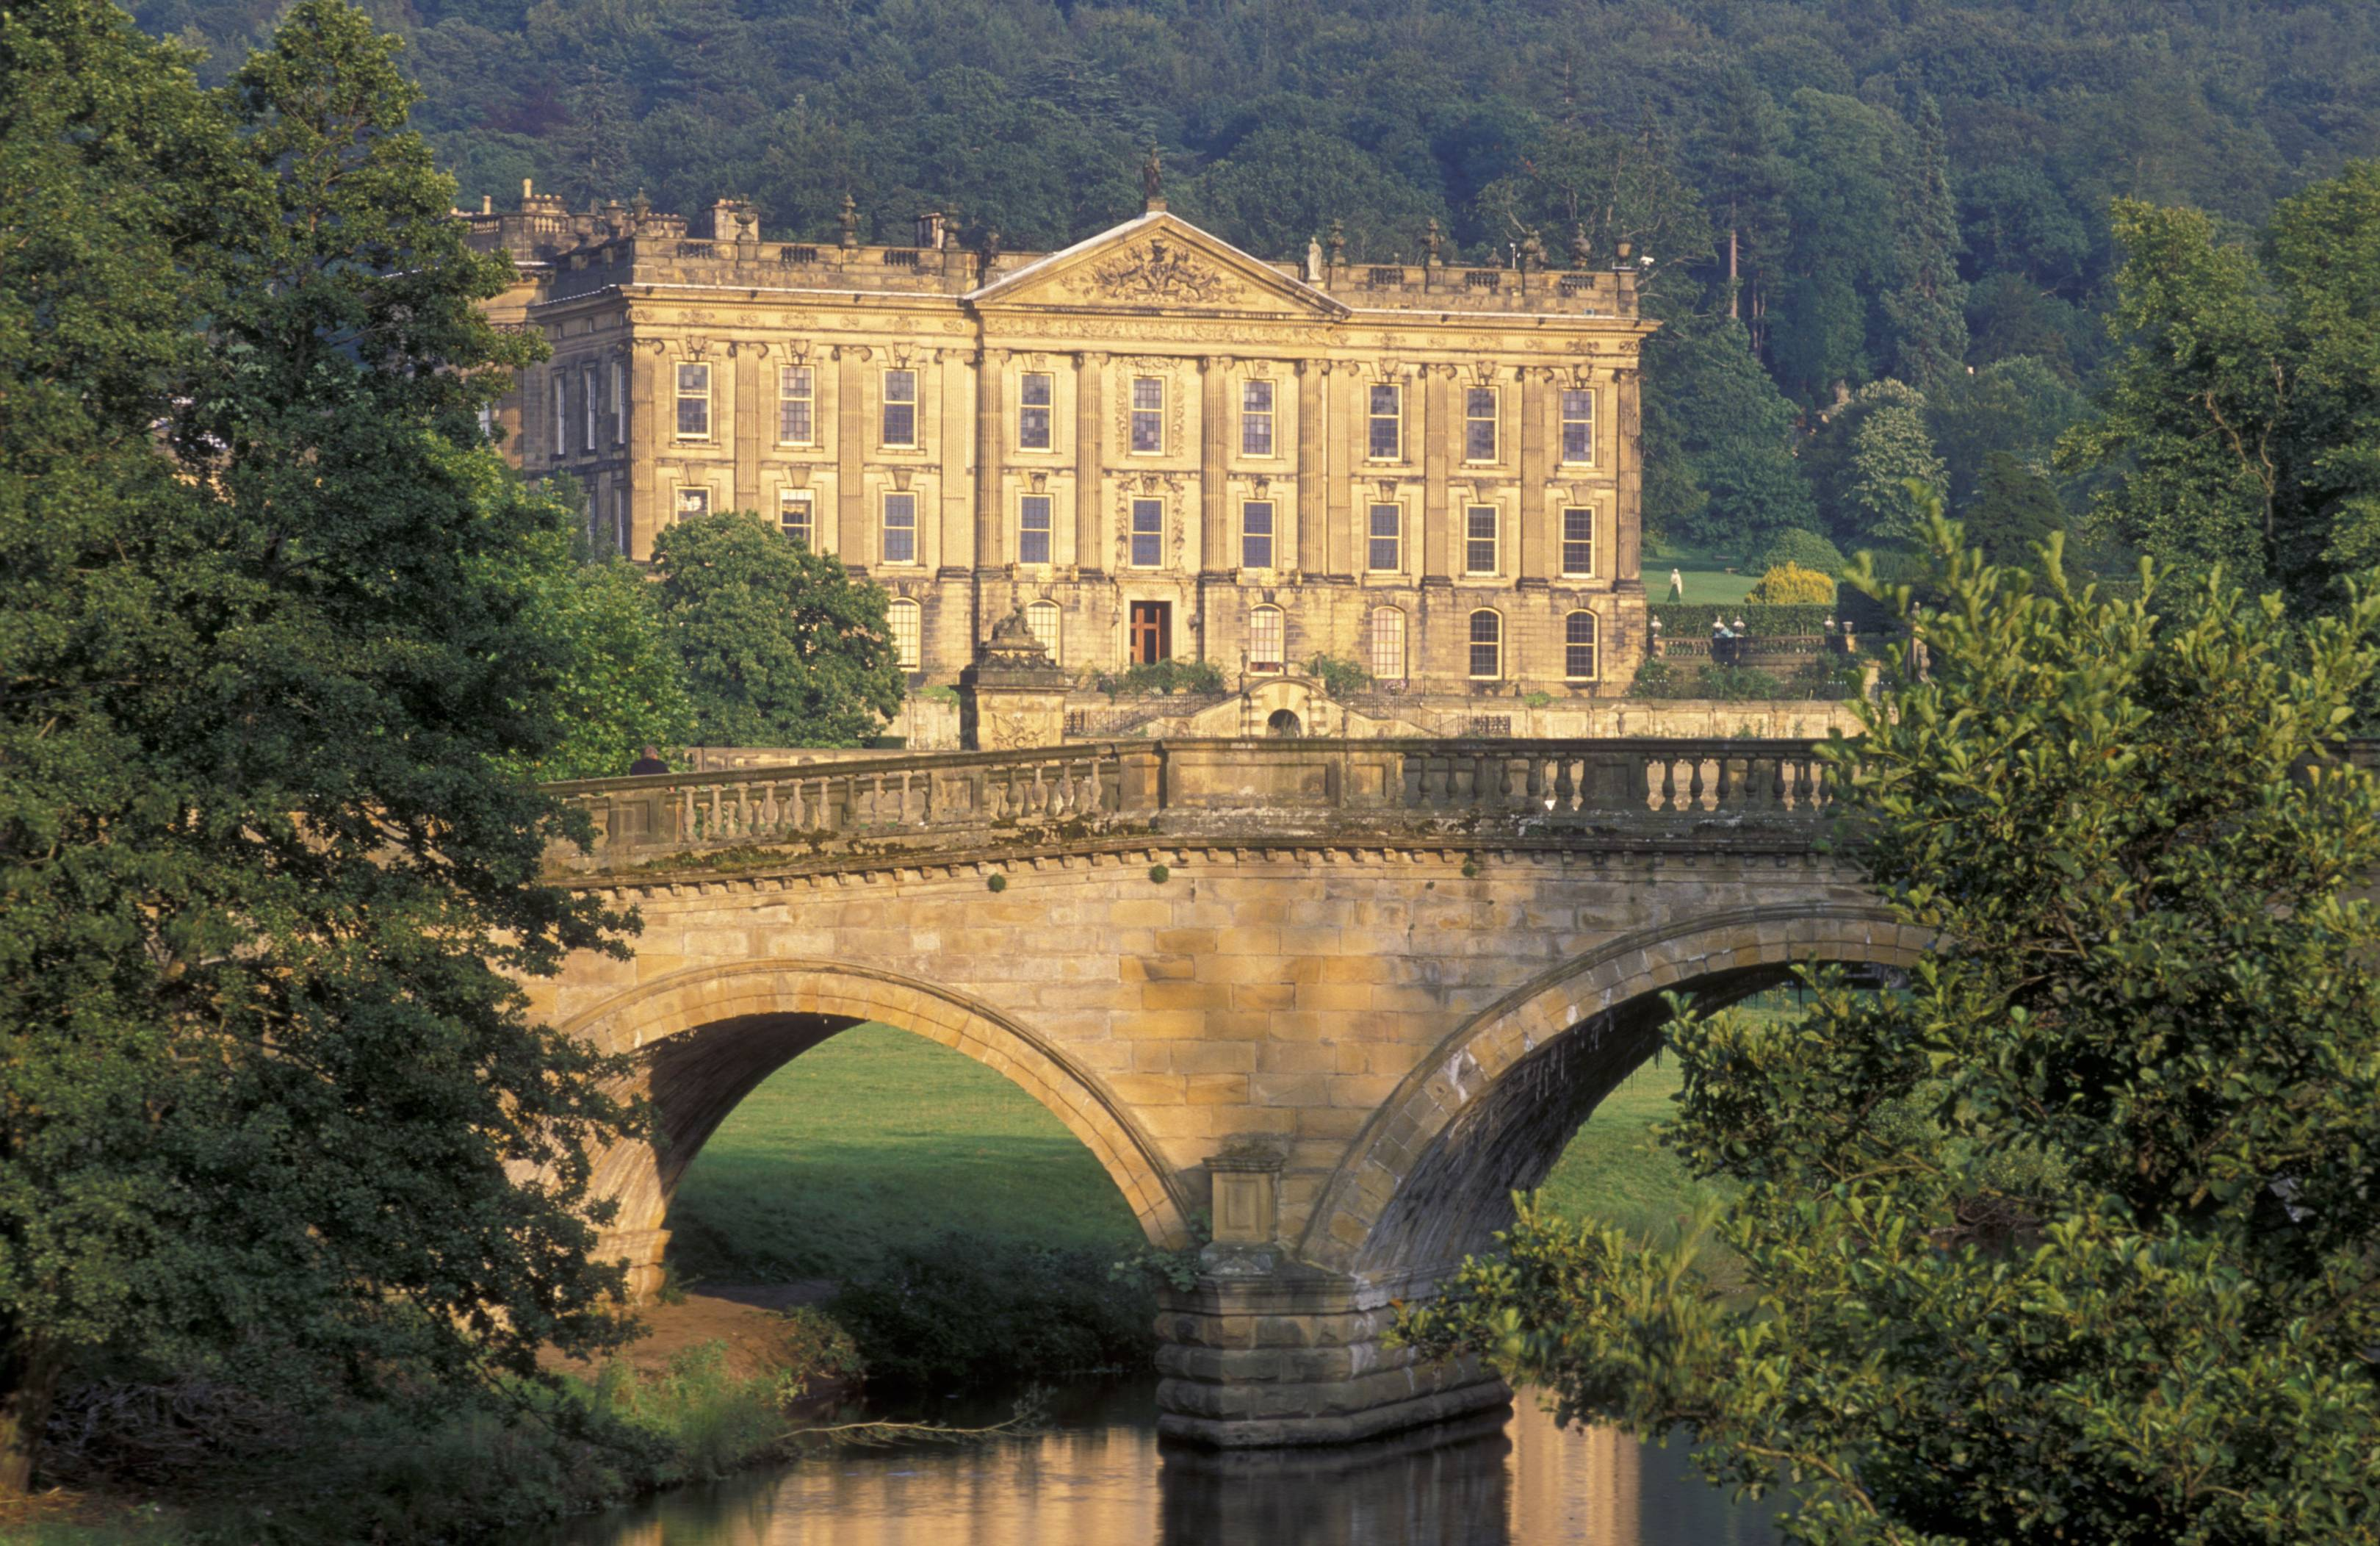 1e33535dcf8061211d16f3975db93774 1 - Becoming Pemberley: Did Britain's Largest Mansion Inspire Mr. Darcy's House?